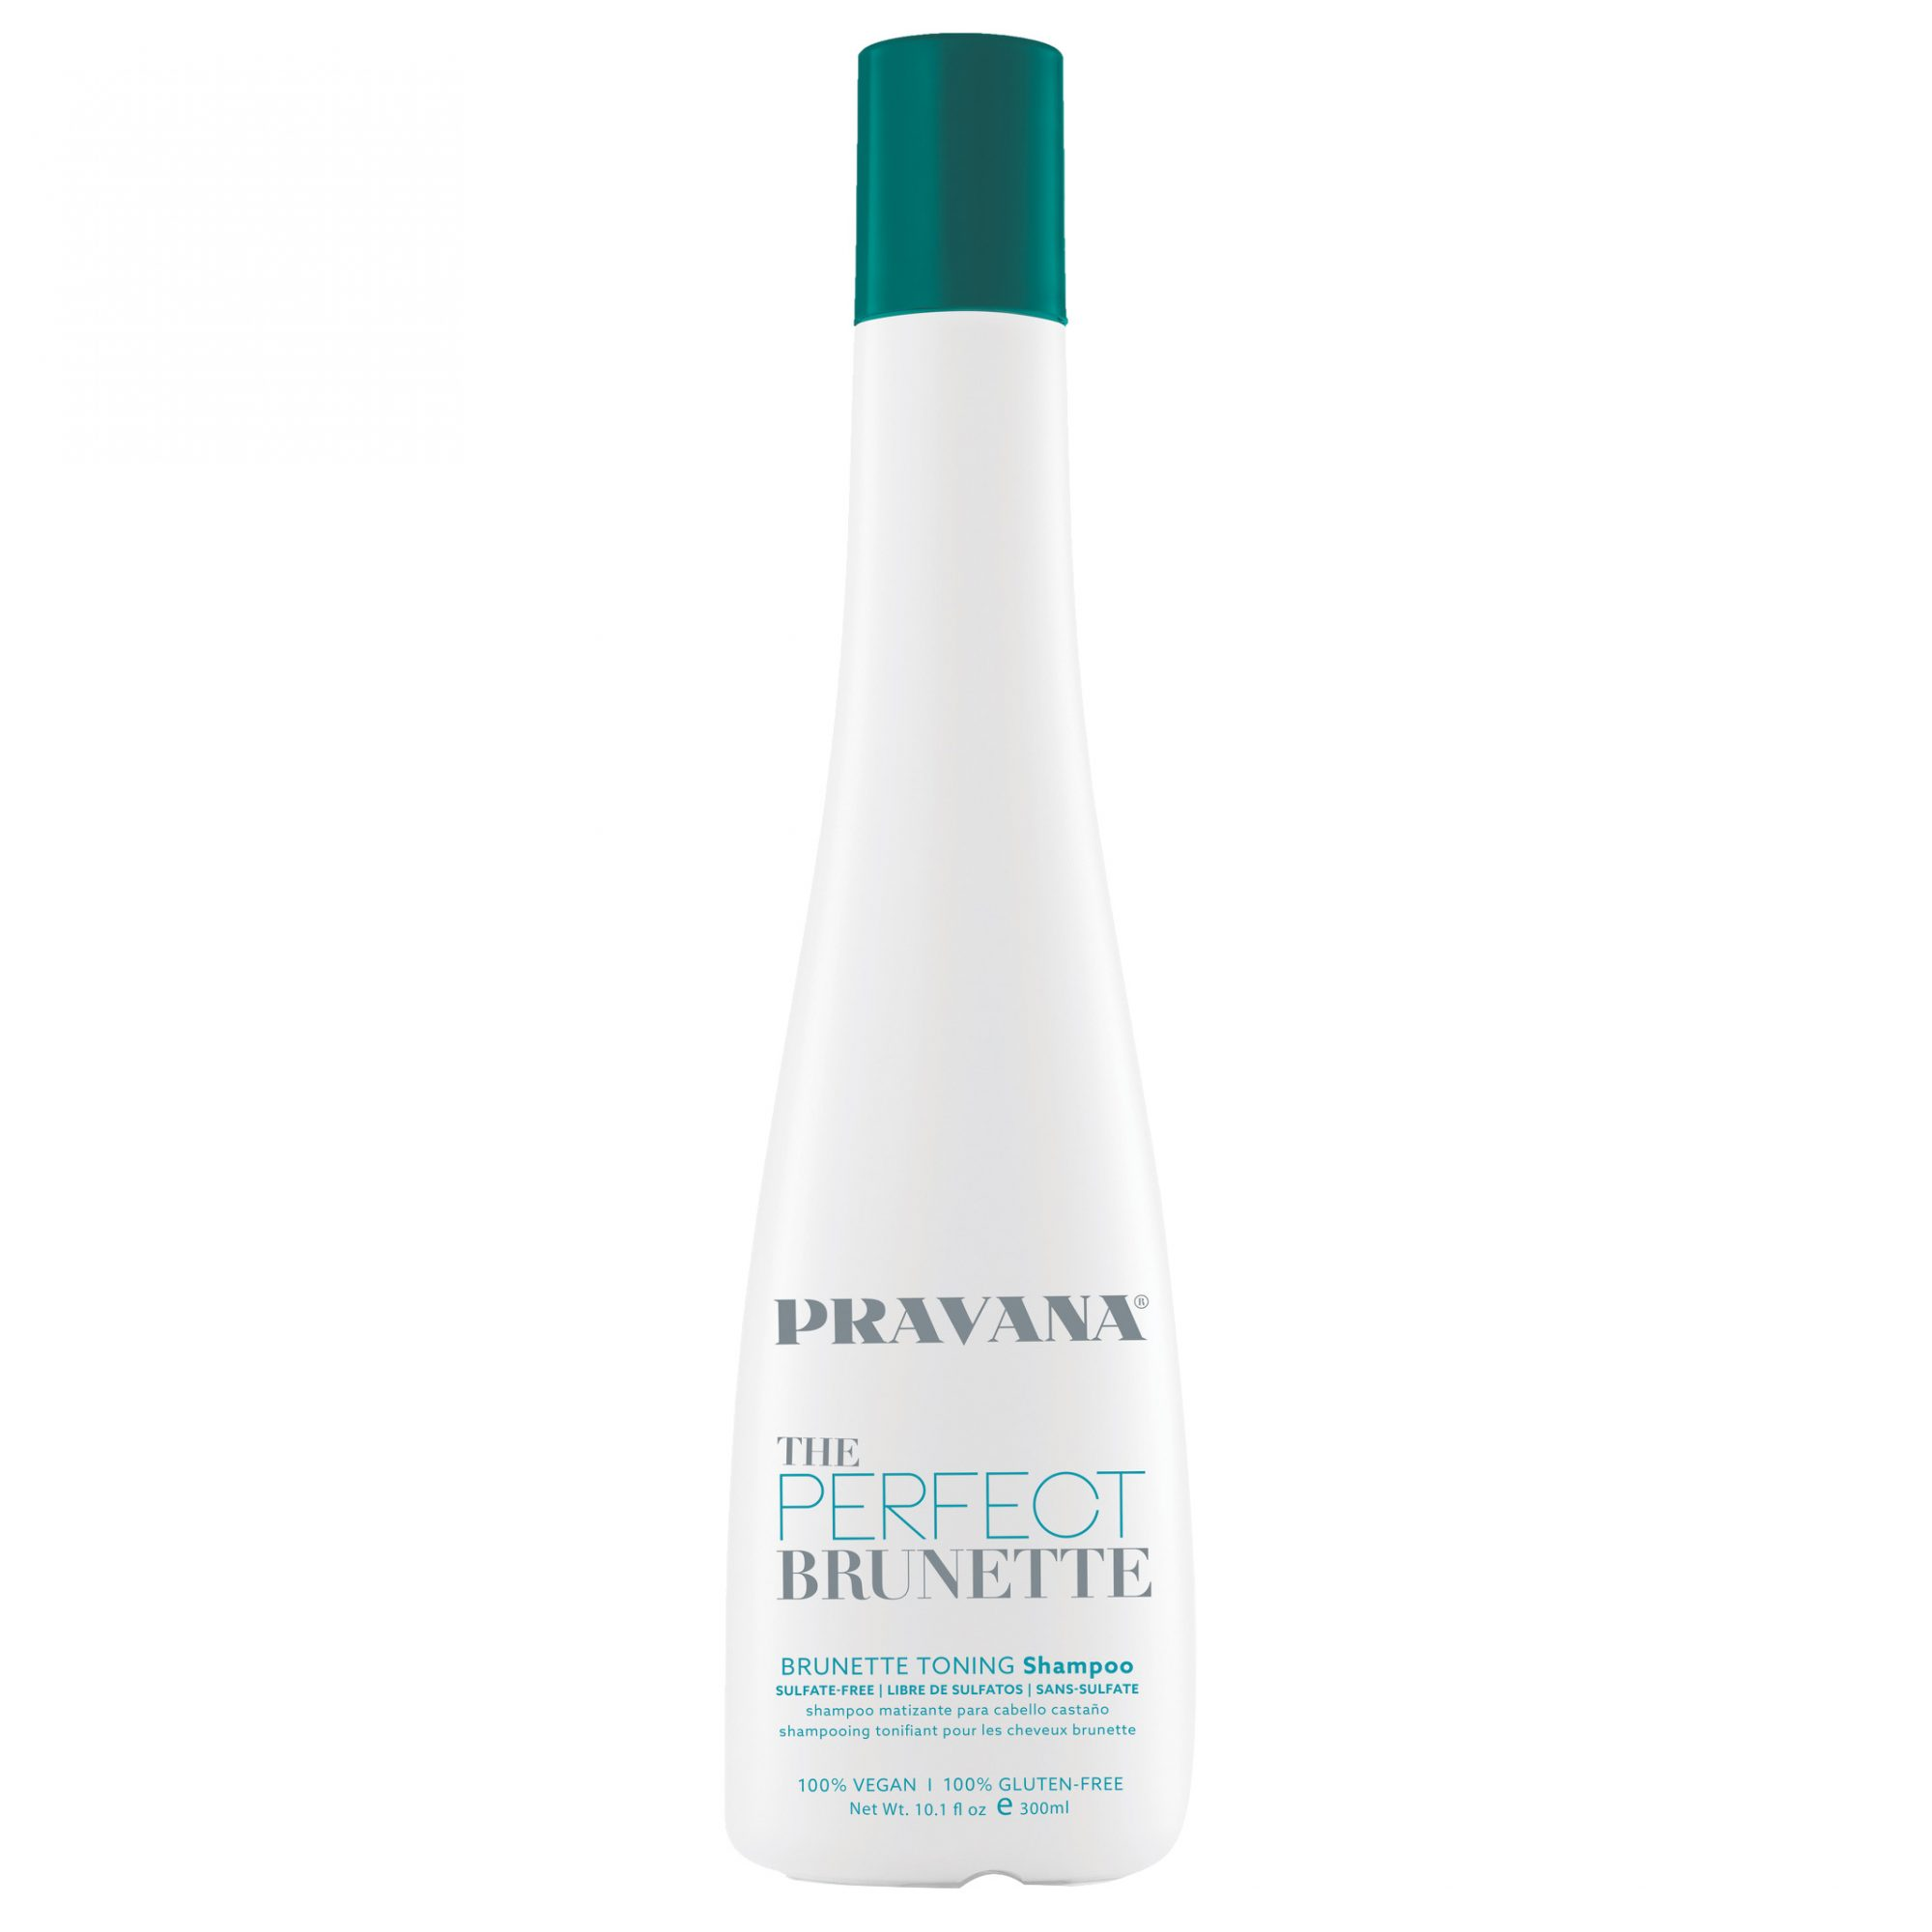 Pravana The Perfect Brunette Toning Shampoo